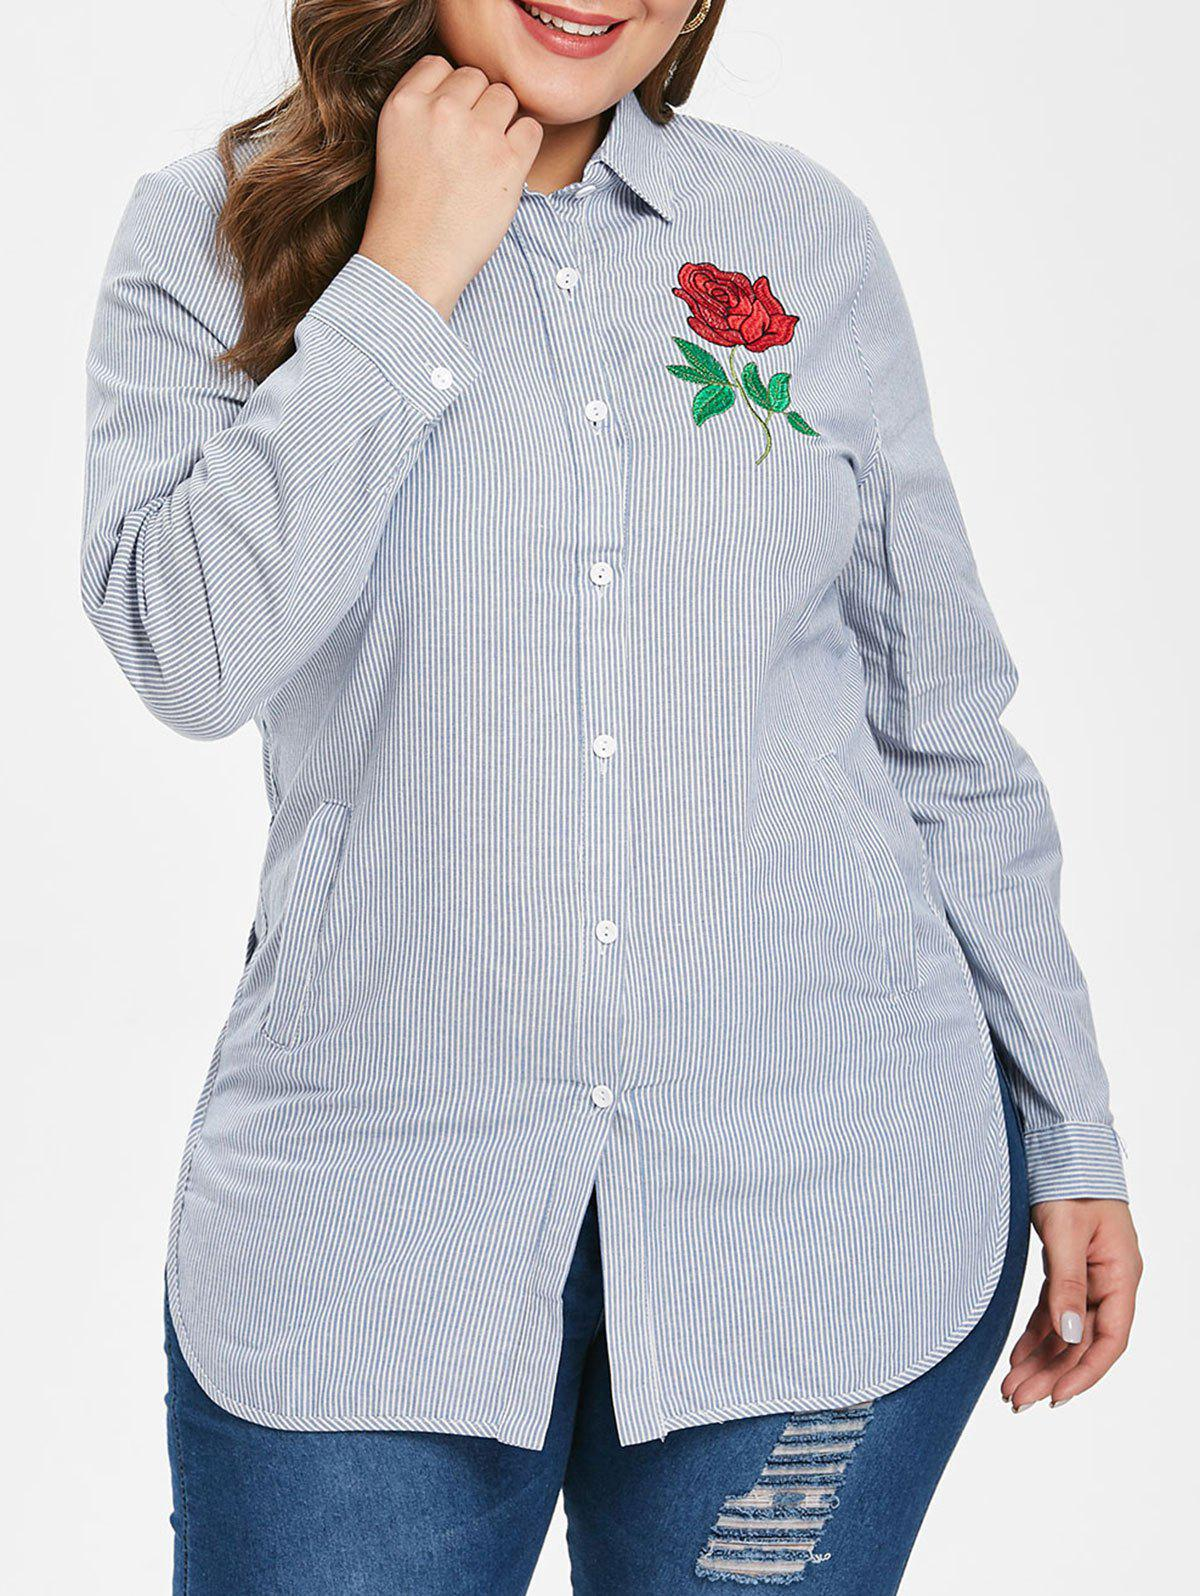 Outfit Plus Size Stripes Shirt with Floral Embroidery